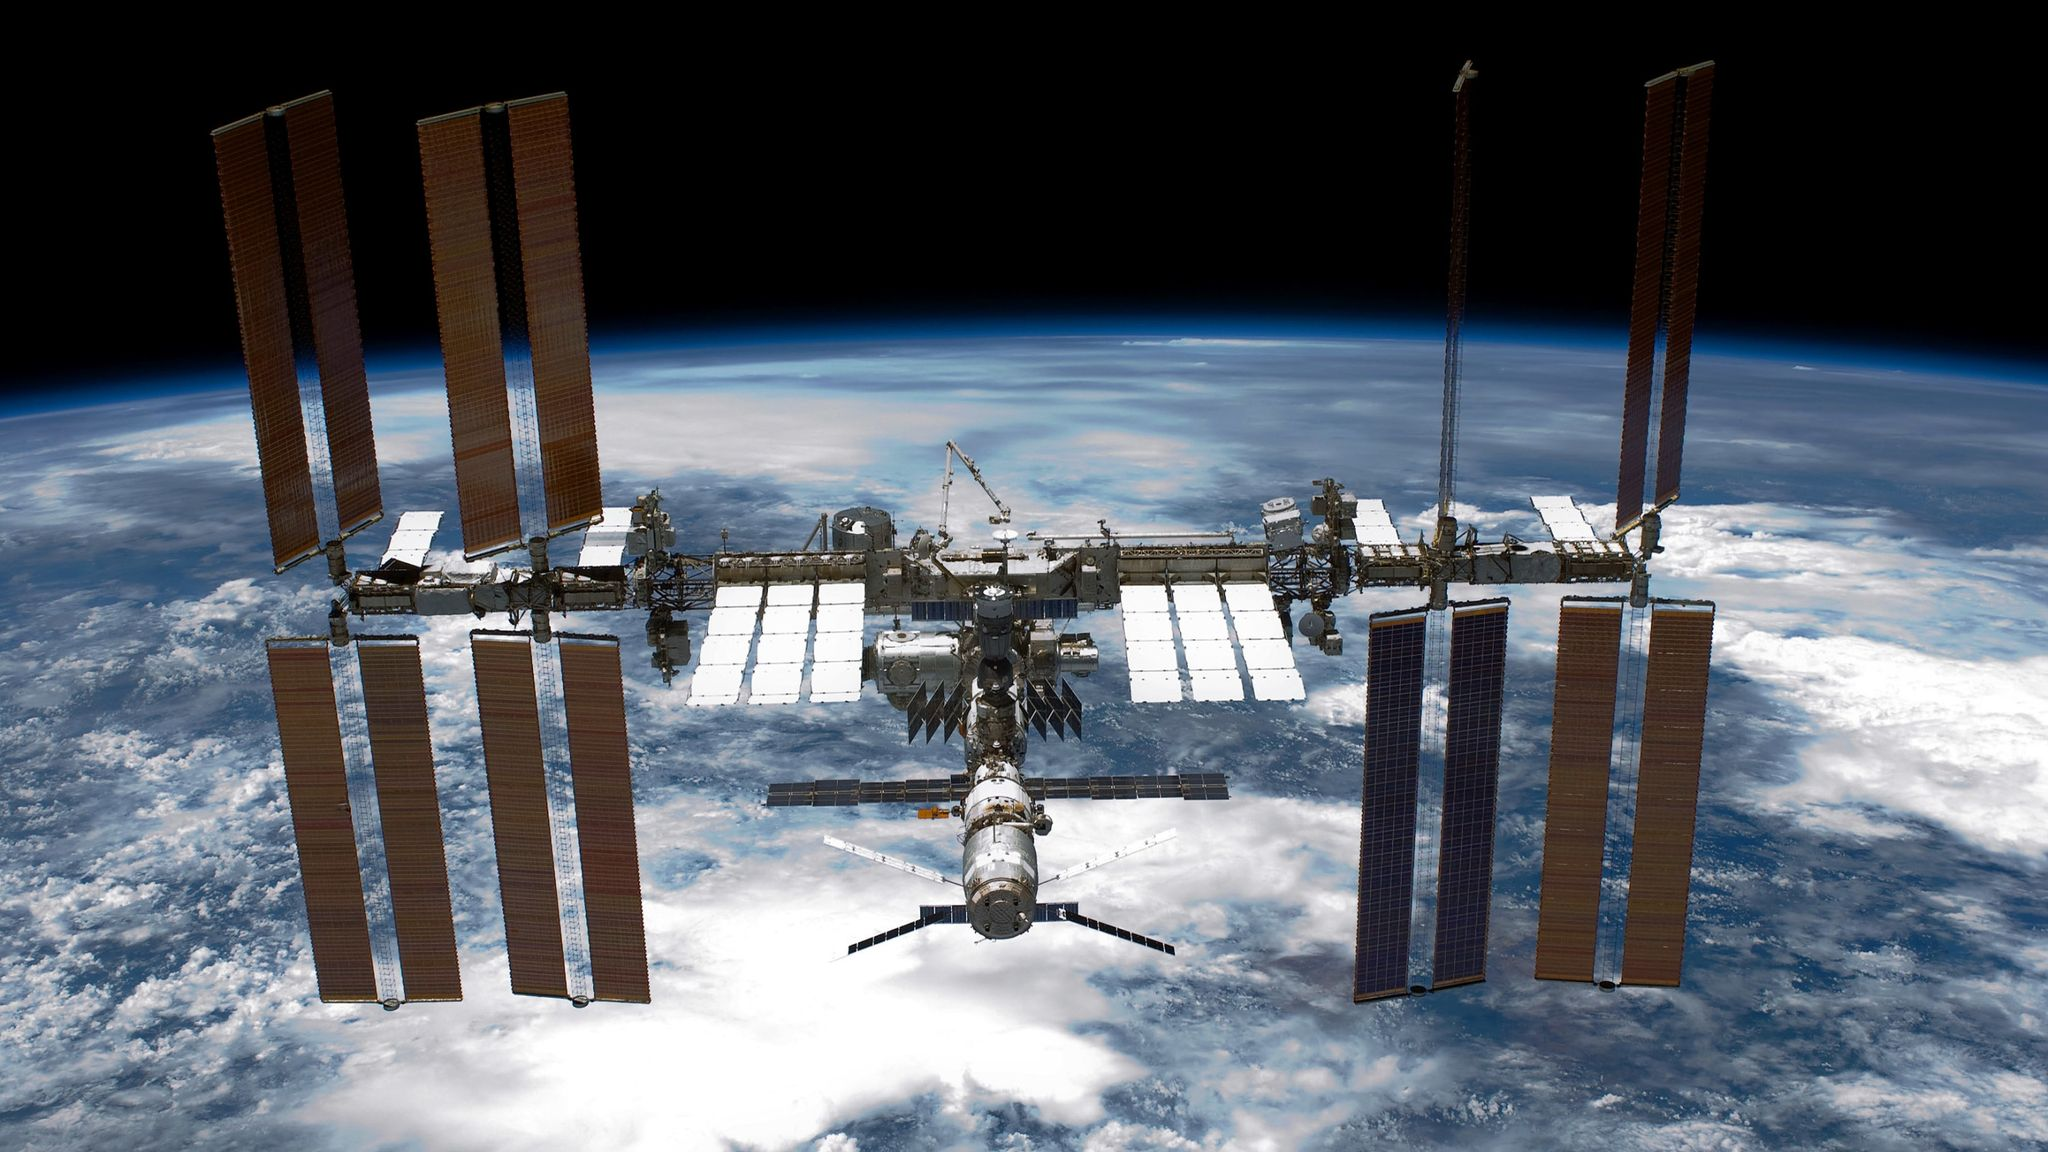 International Space Station: Astronauts repair cosmic ray detector